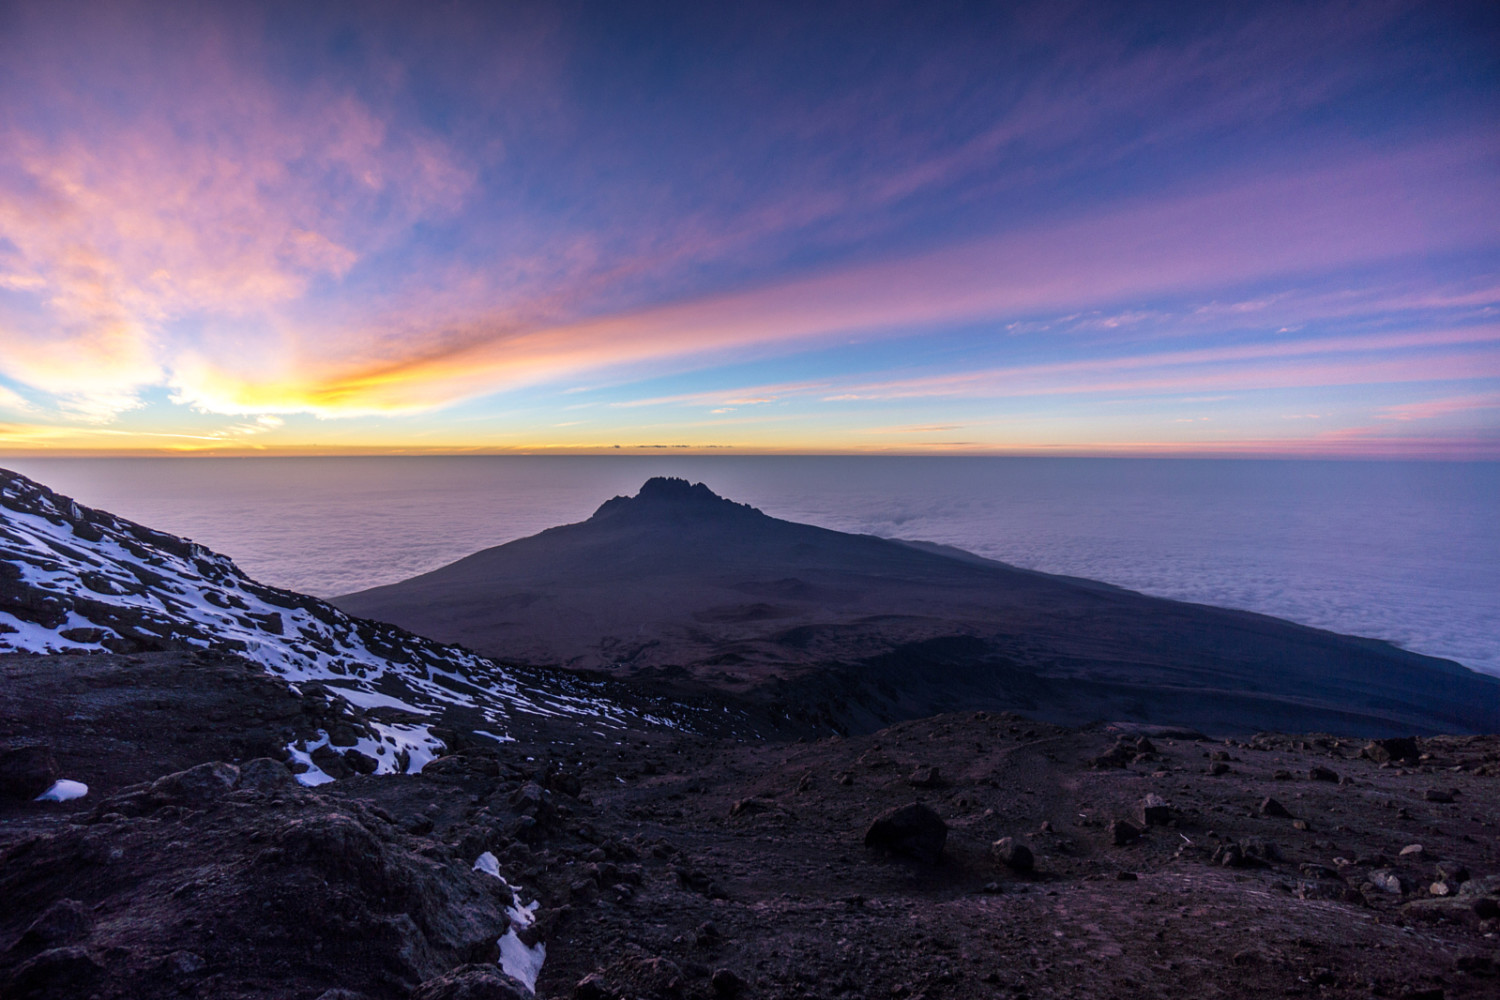 Climbing Kilimanjaro One Photo at a Time